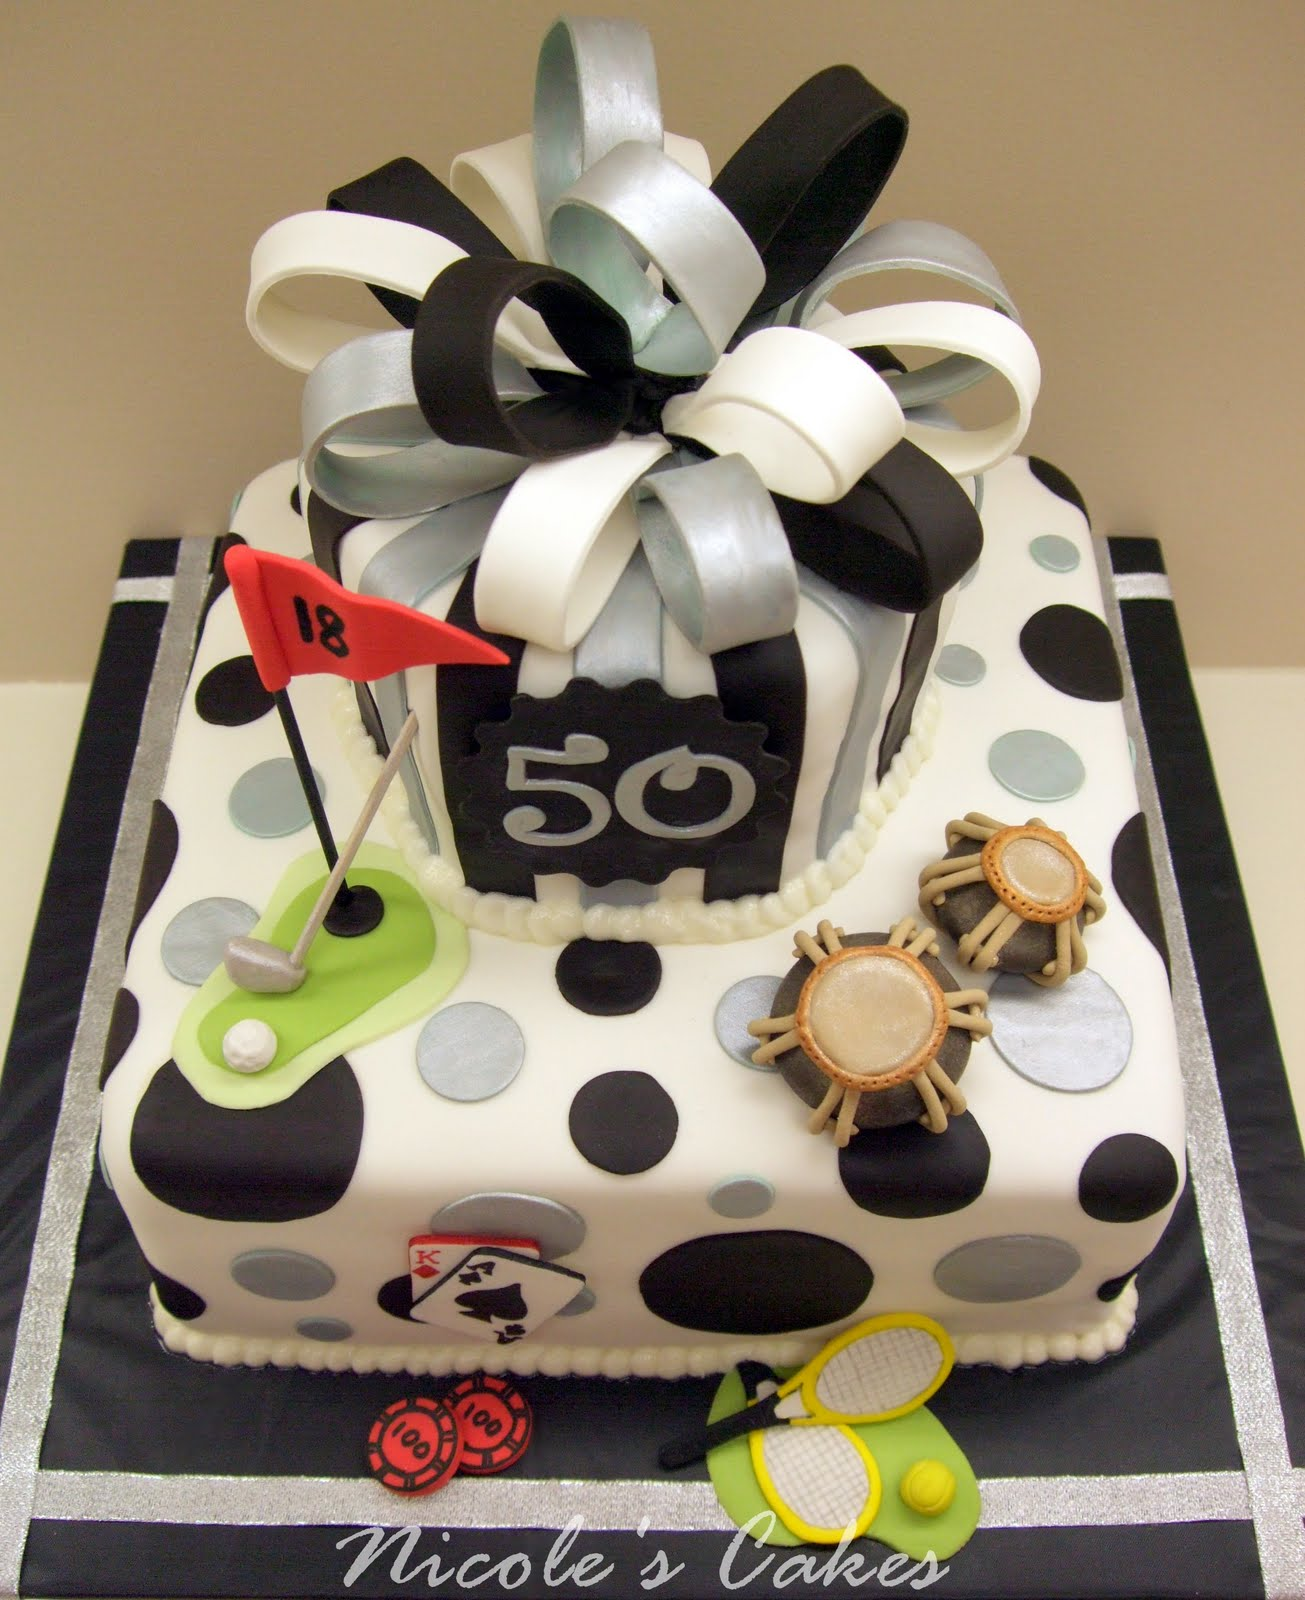 On Birthday Cakes:  Favorite Things  : A 50th Birthday Cake